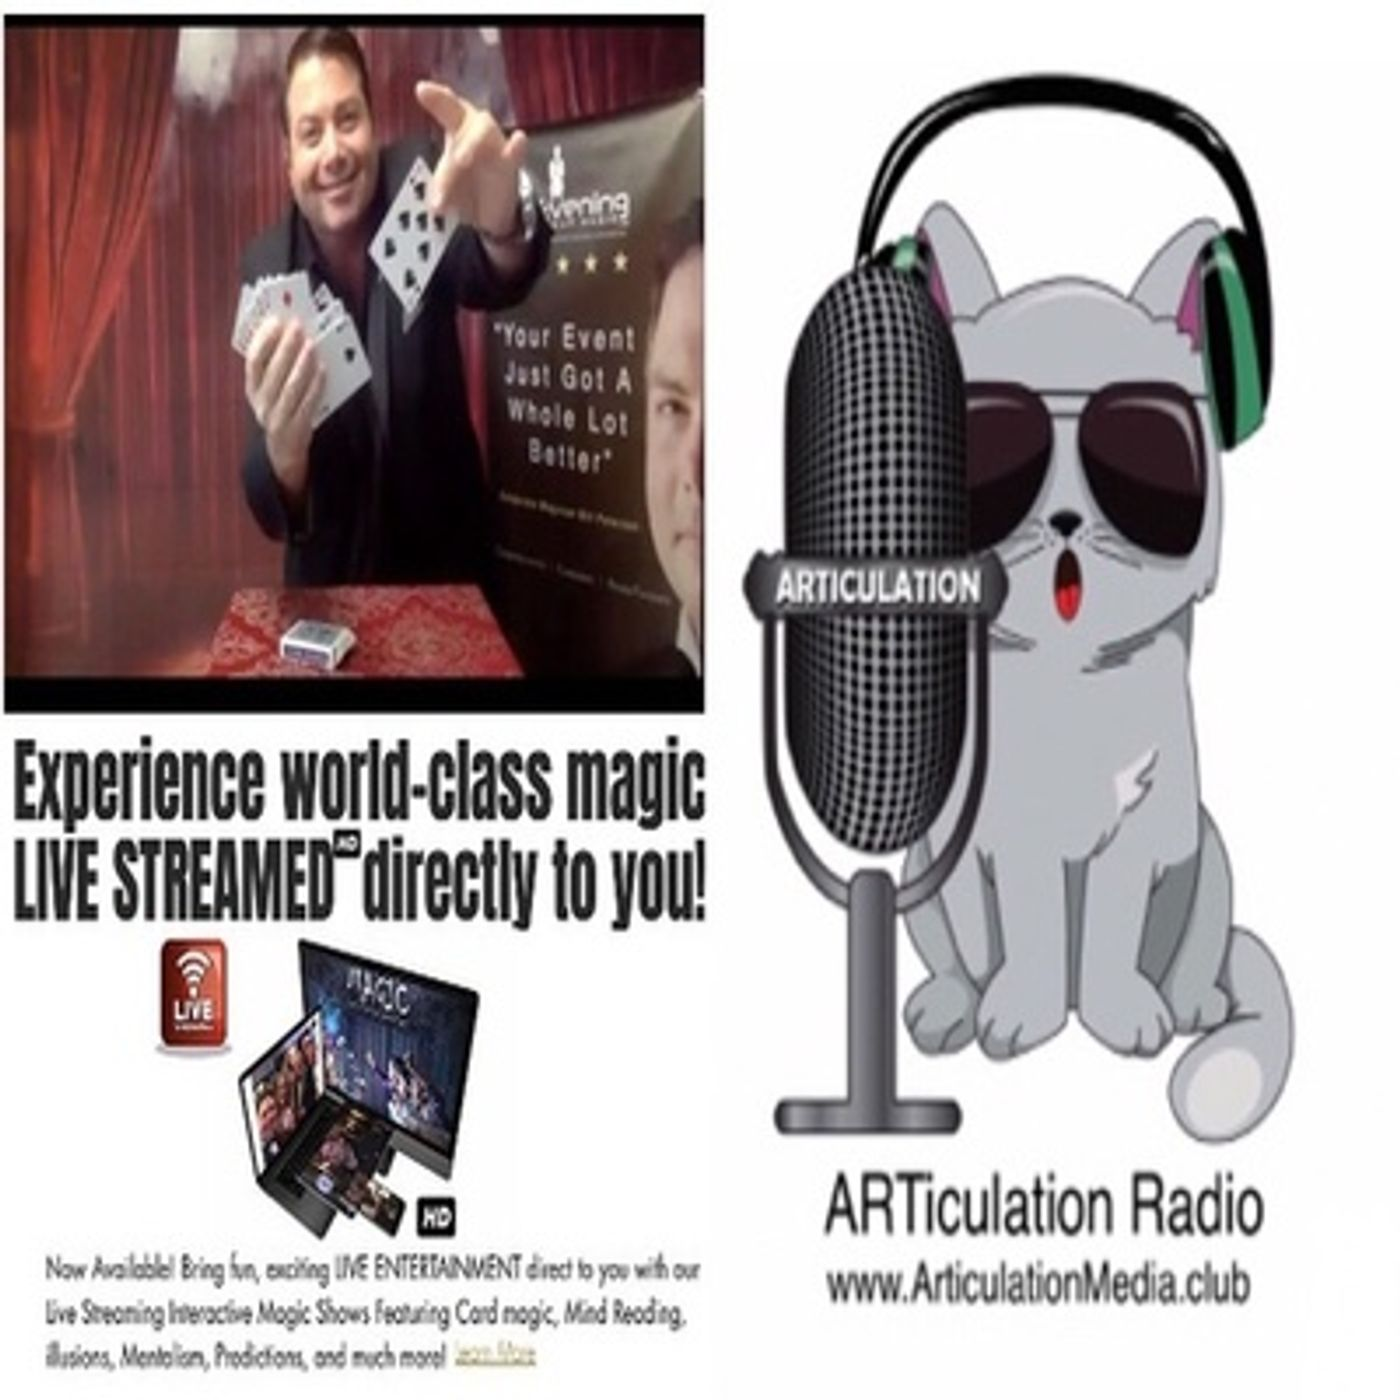 ARTiculation Radio — BNQ1 - MAKING MOMENTS MAGICAL (interview w/ Magician Bill Peterson)